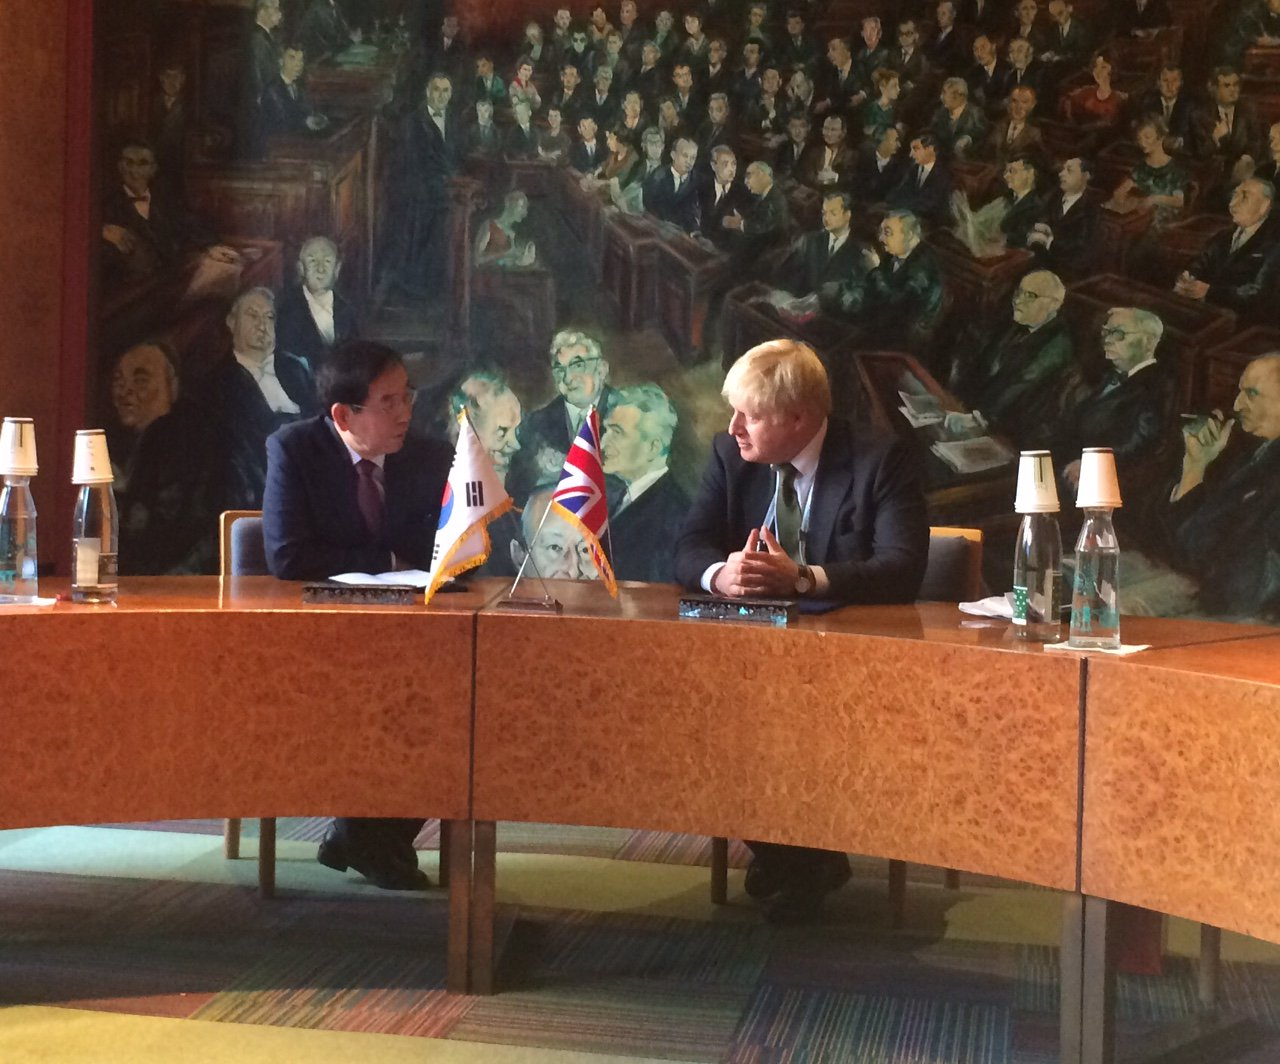 I have just signed a MOU with the Mayor of Seoul that our cities will work to use new clean tech to reduce emissions https://t.co/2B1HNydjVD